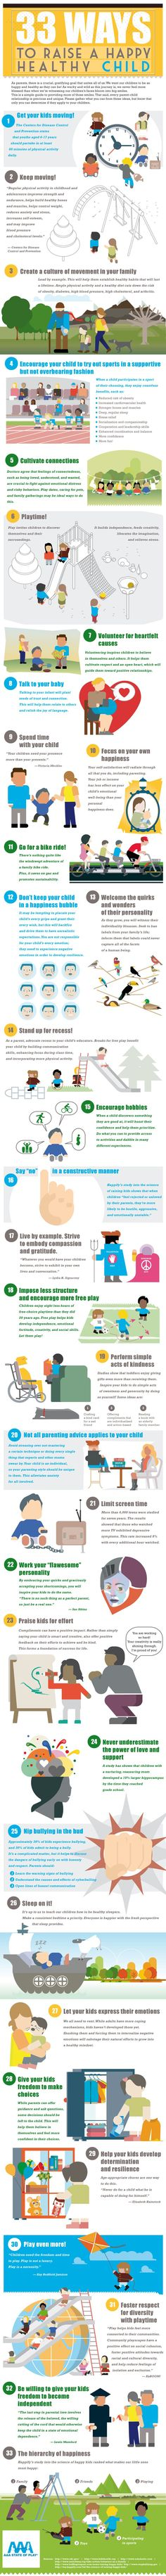 33 Ways to Raise a Happy, Healthy Child